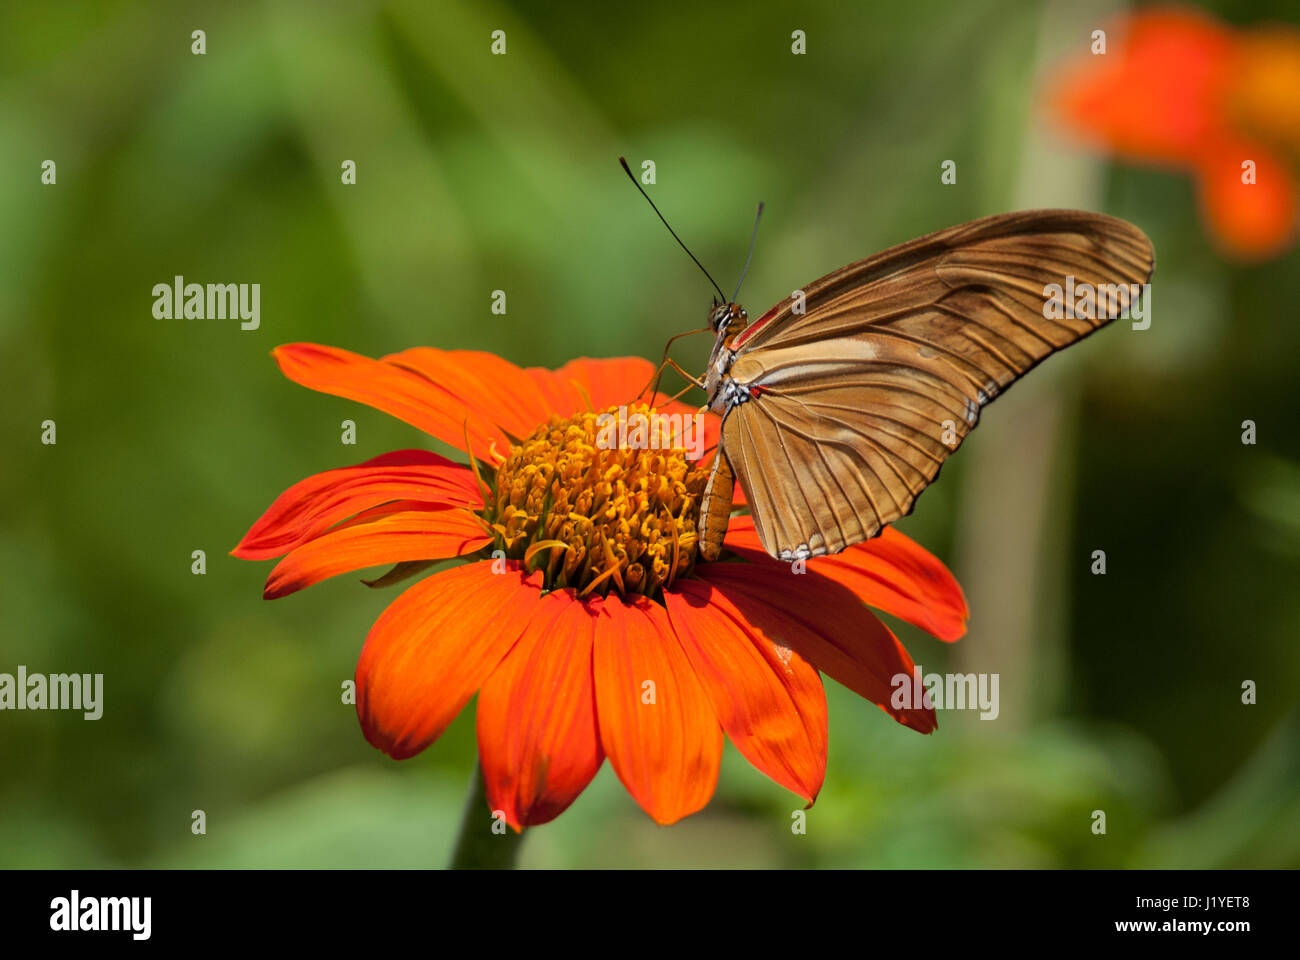 Julia butterfly (Dryas iulia) feeding on nectar from an orange coloured flower with wings folded - Stock Image